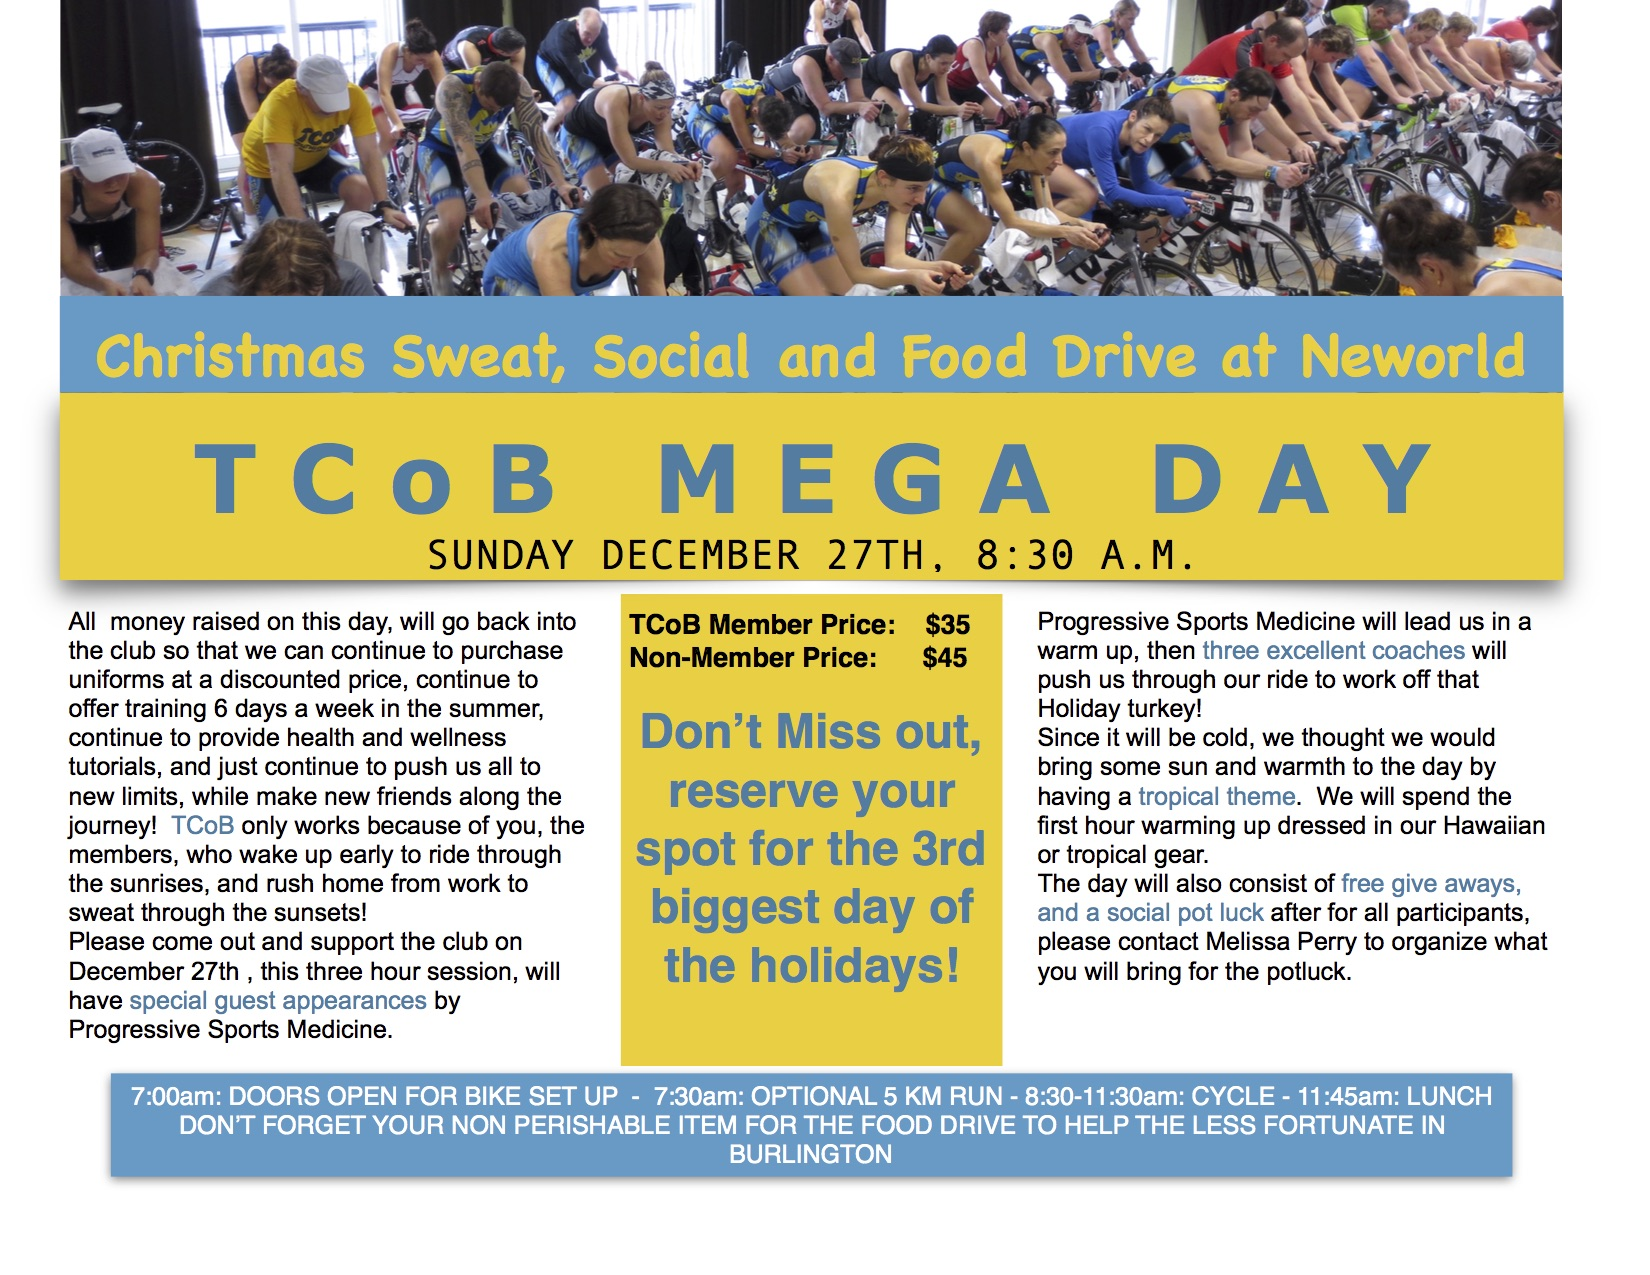 TCoB Mega Day – Christmas Sweat, Social and Food Drive at Neworld